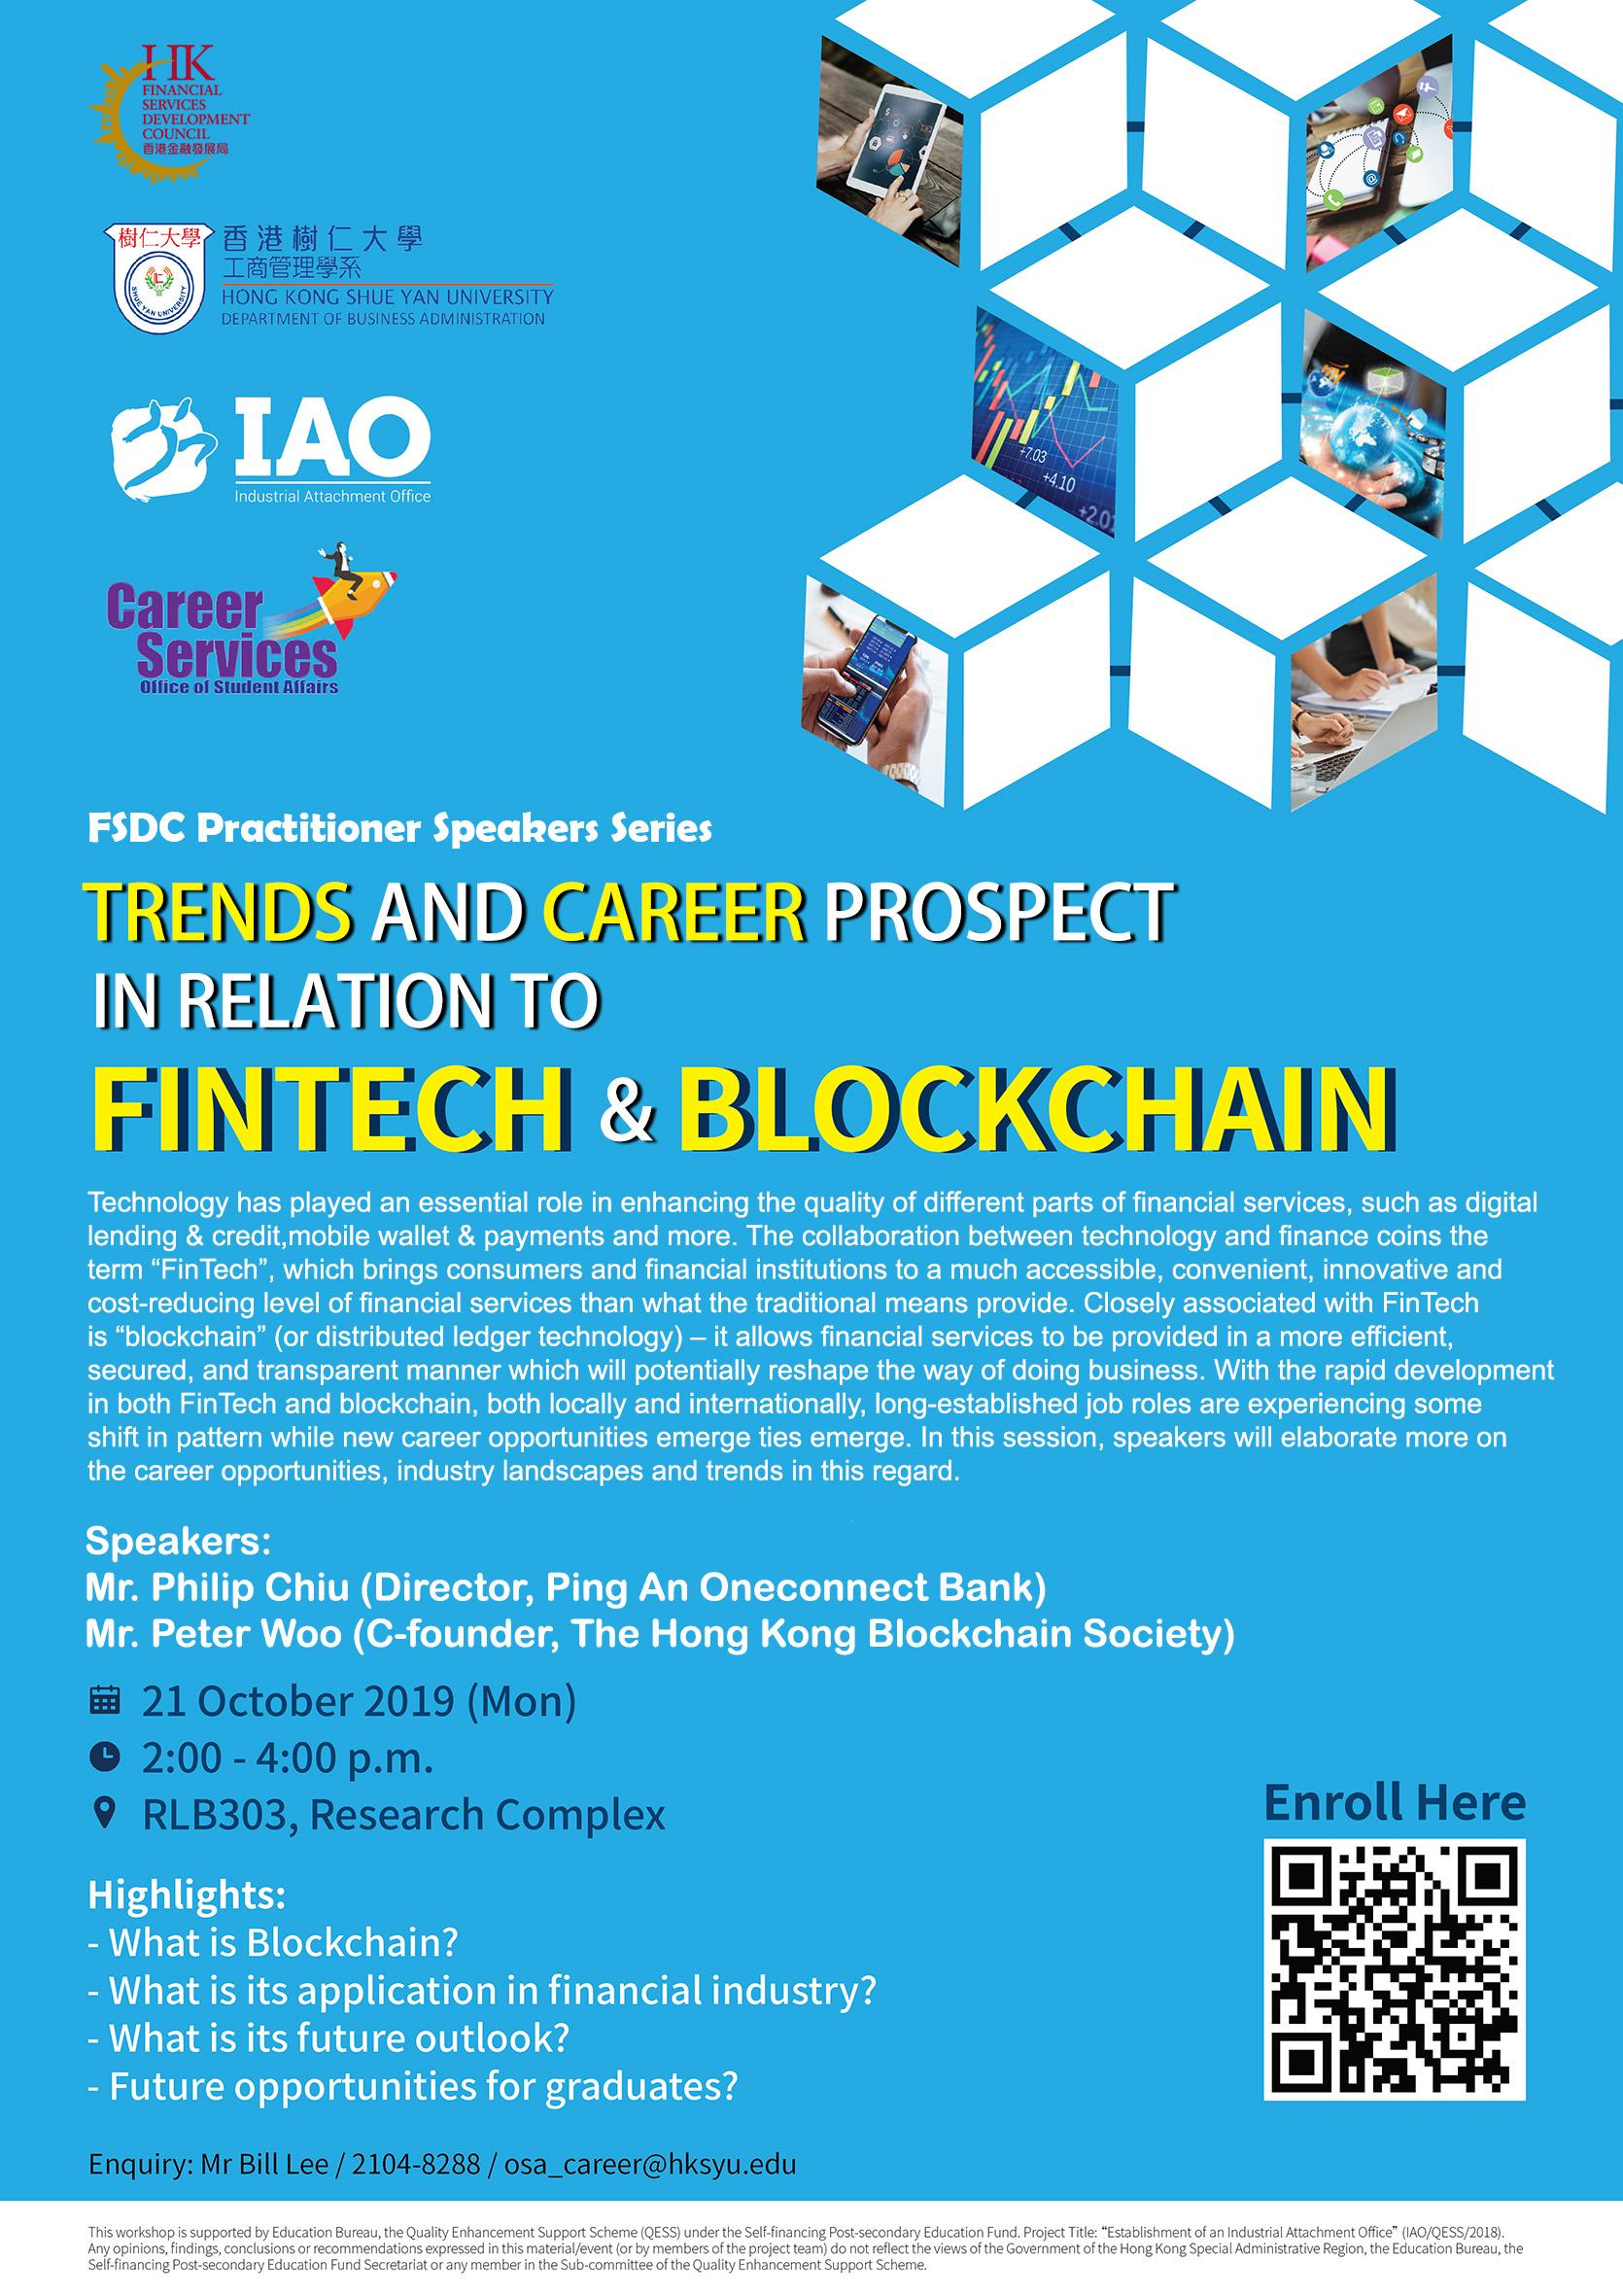 Trends and Career Prospect in relation to FinTech and Blockchain